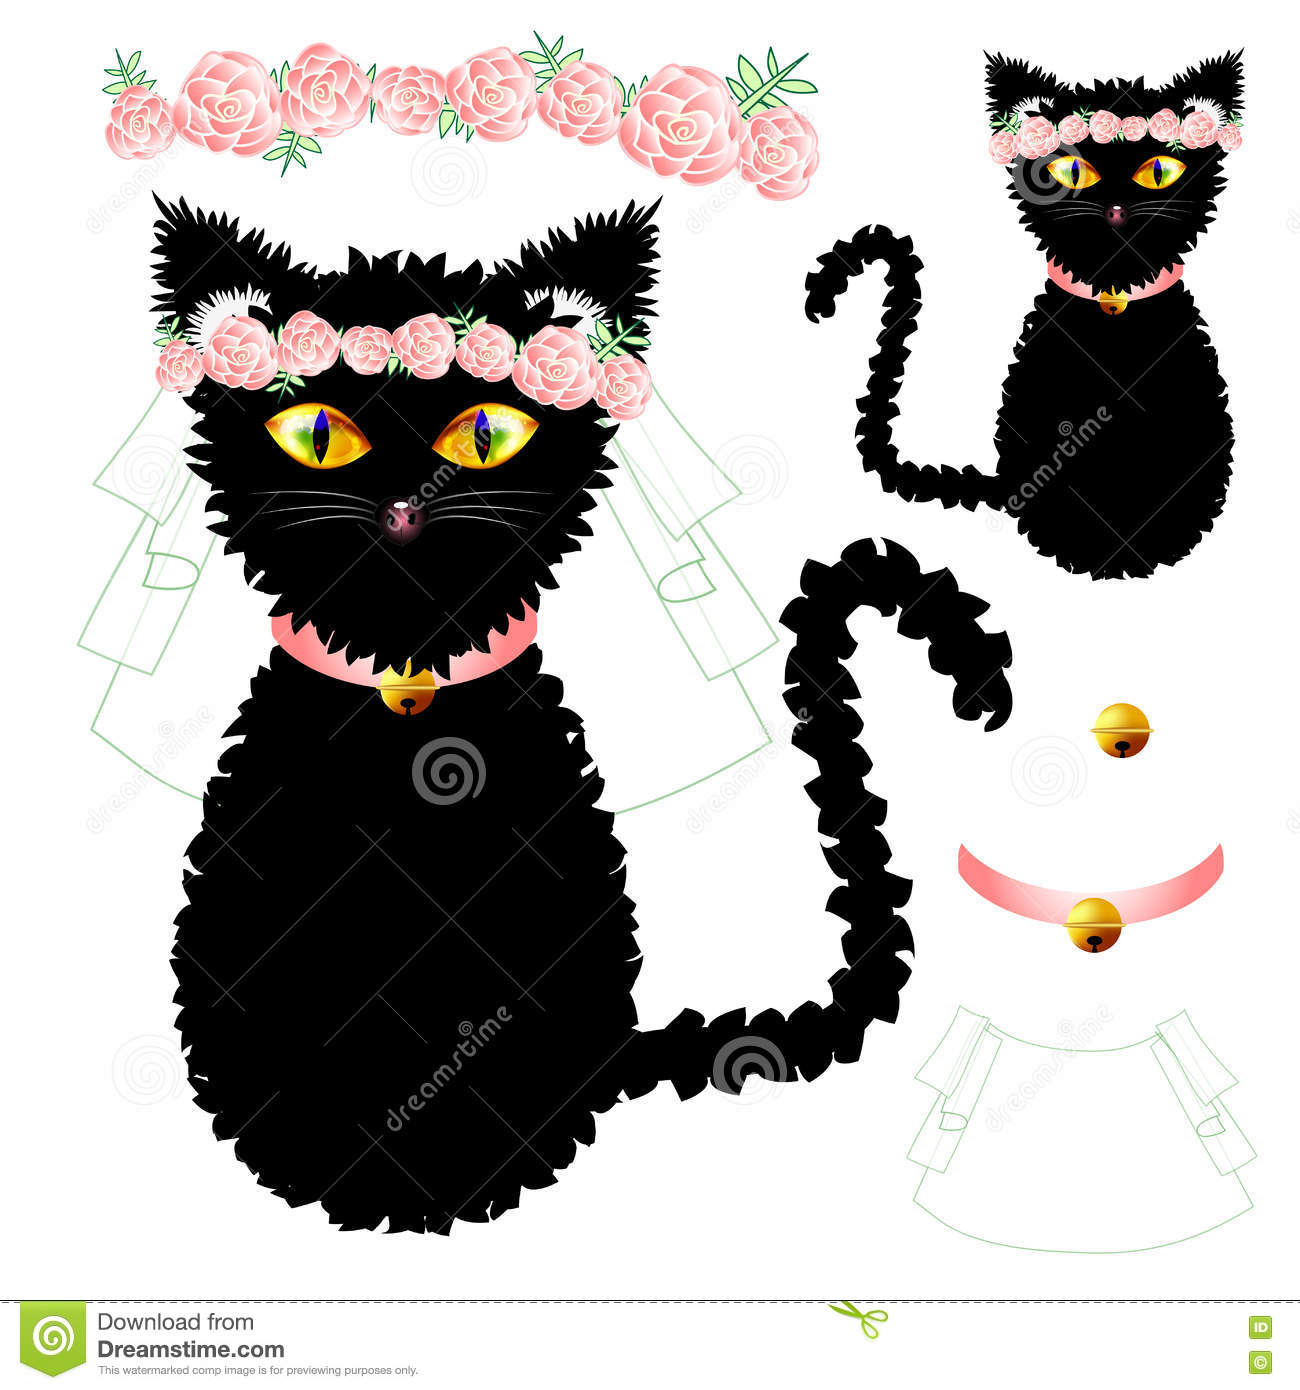 Black Cat Bride With Yellow Eyes, Crown Pink Rose Flower, Golden.